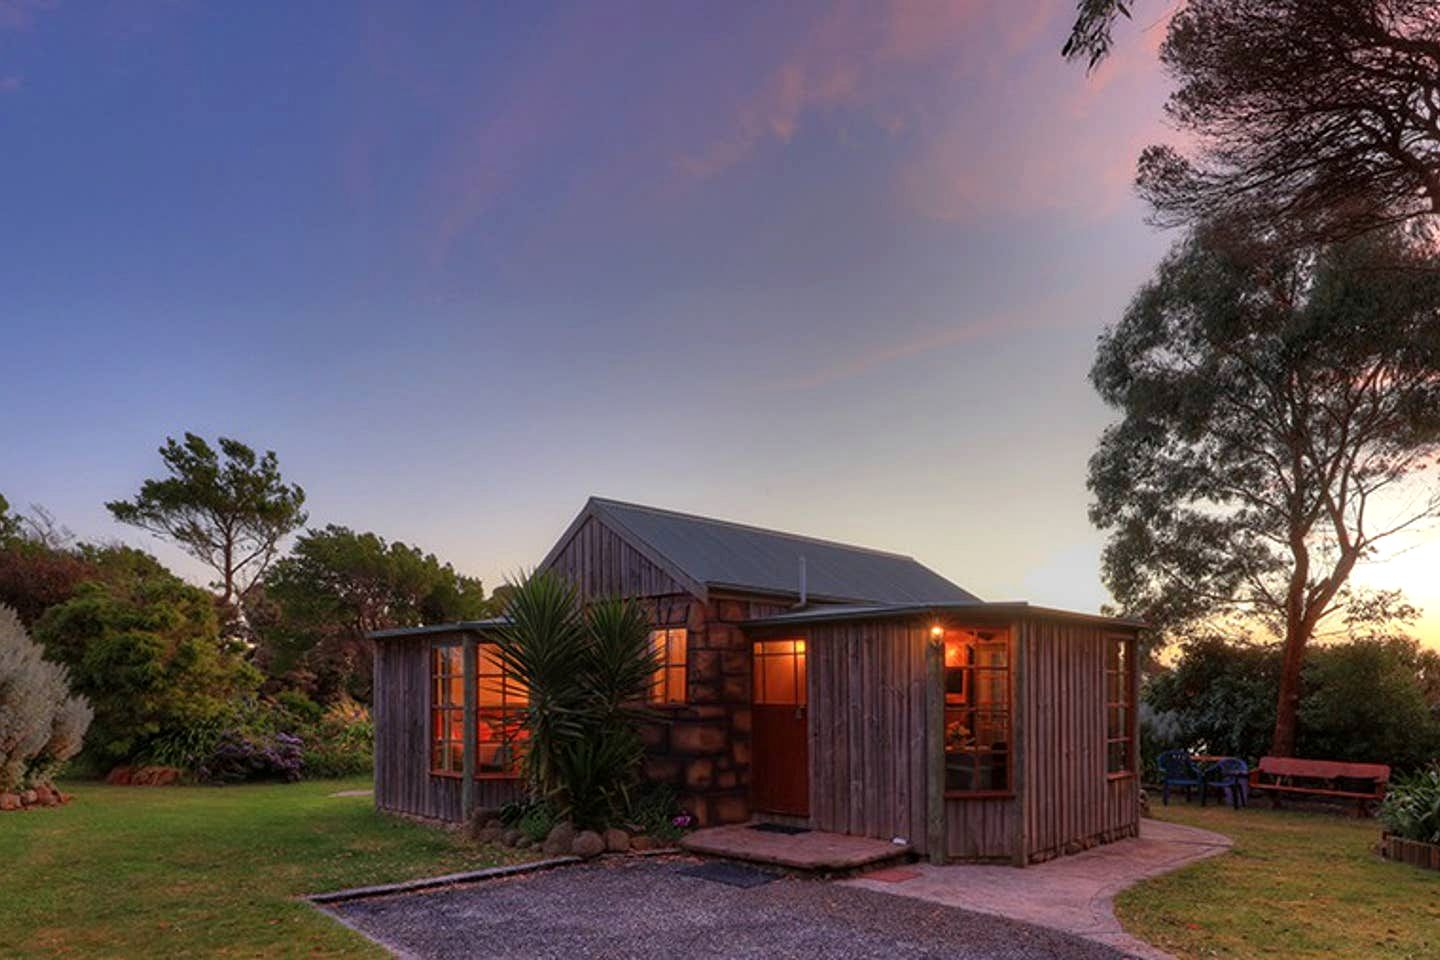 This lovely Arthur River accommodation is perfect for romantic getaways in Tasmania, thanks to its beauty and seclusion